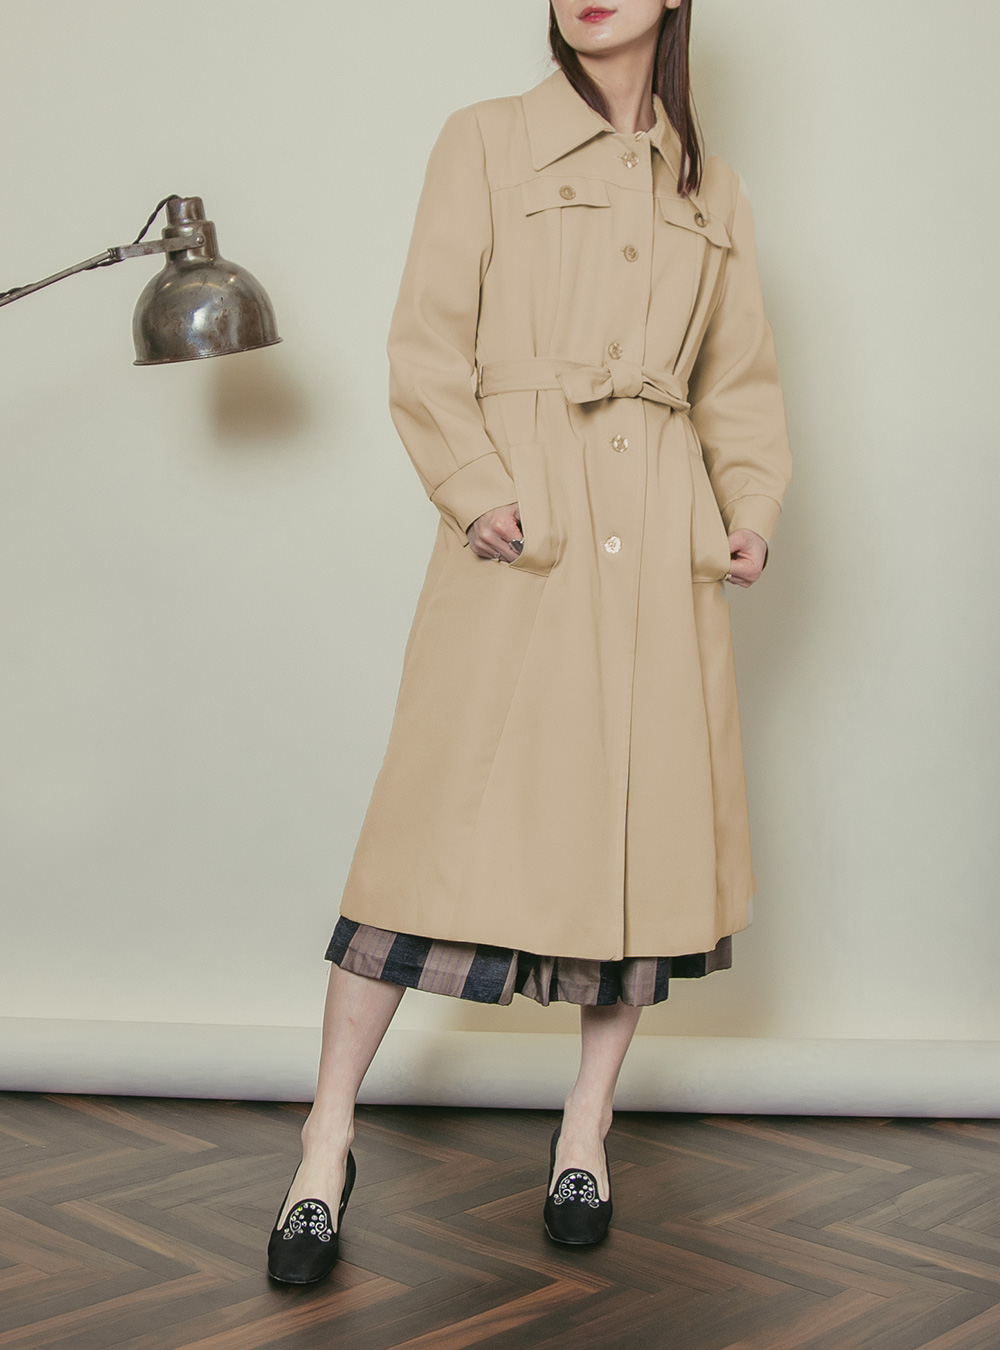 1970's Beige Design Spring Coat